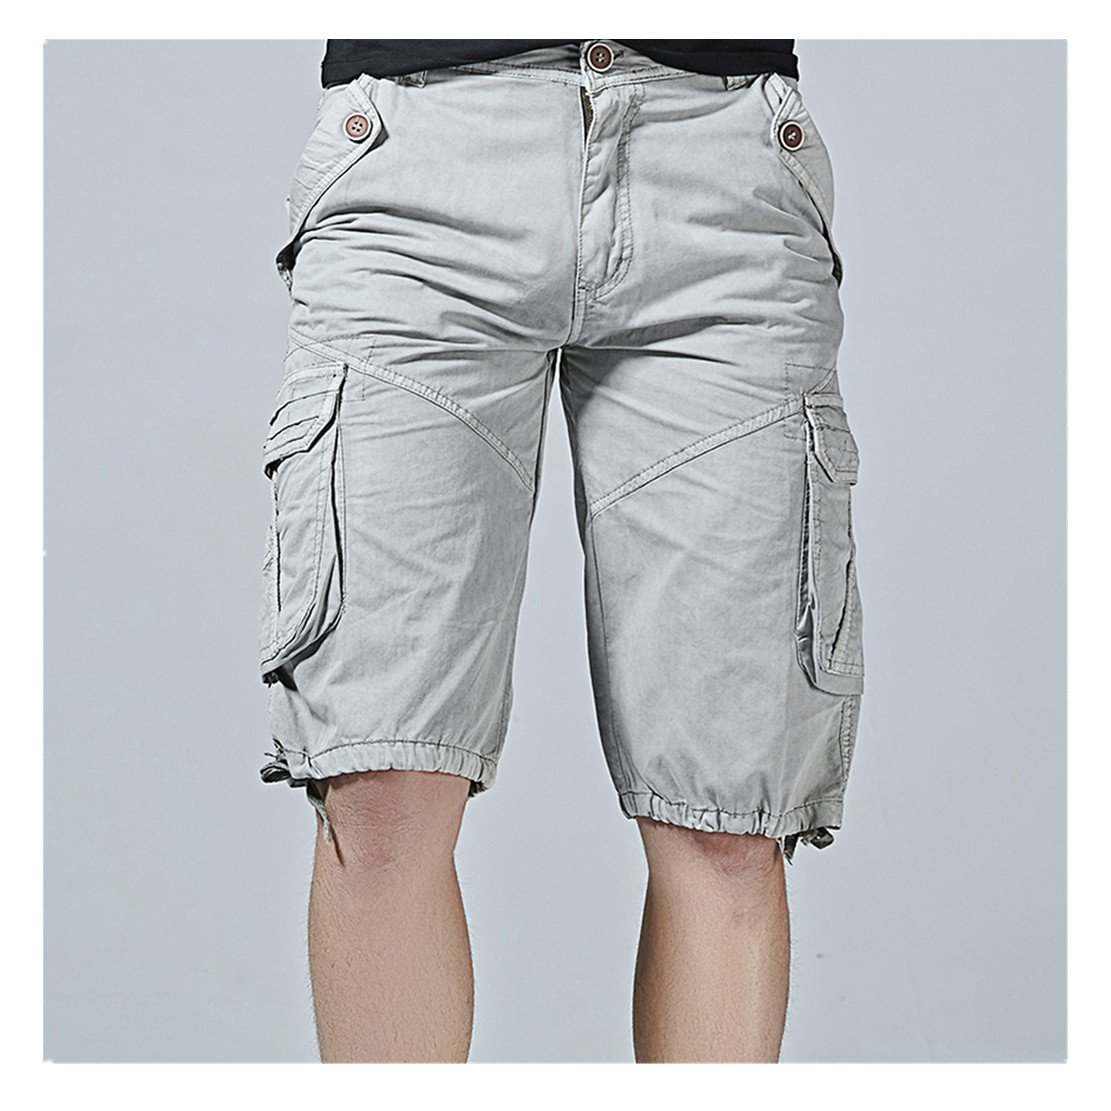 WEUIE Clearance Sale Fashion Mens Casual Pocket Beach Work Casual Short Trouser Shorts Pants (38,Gray )